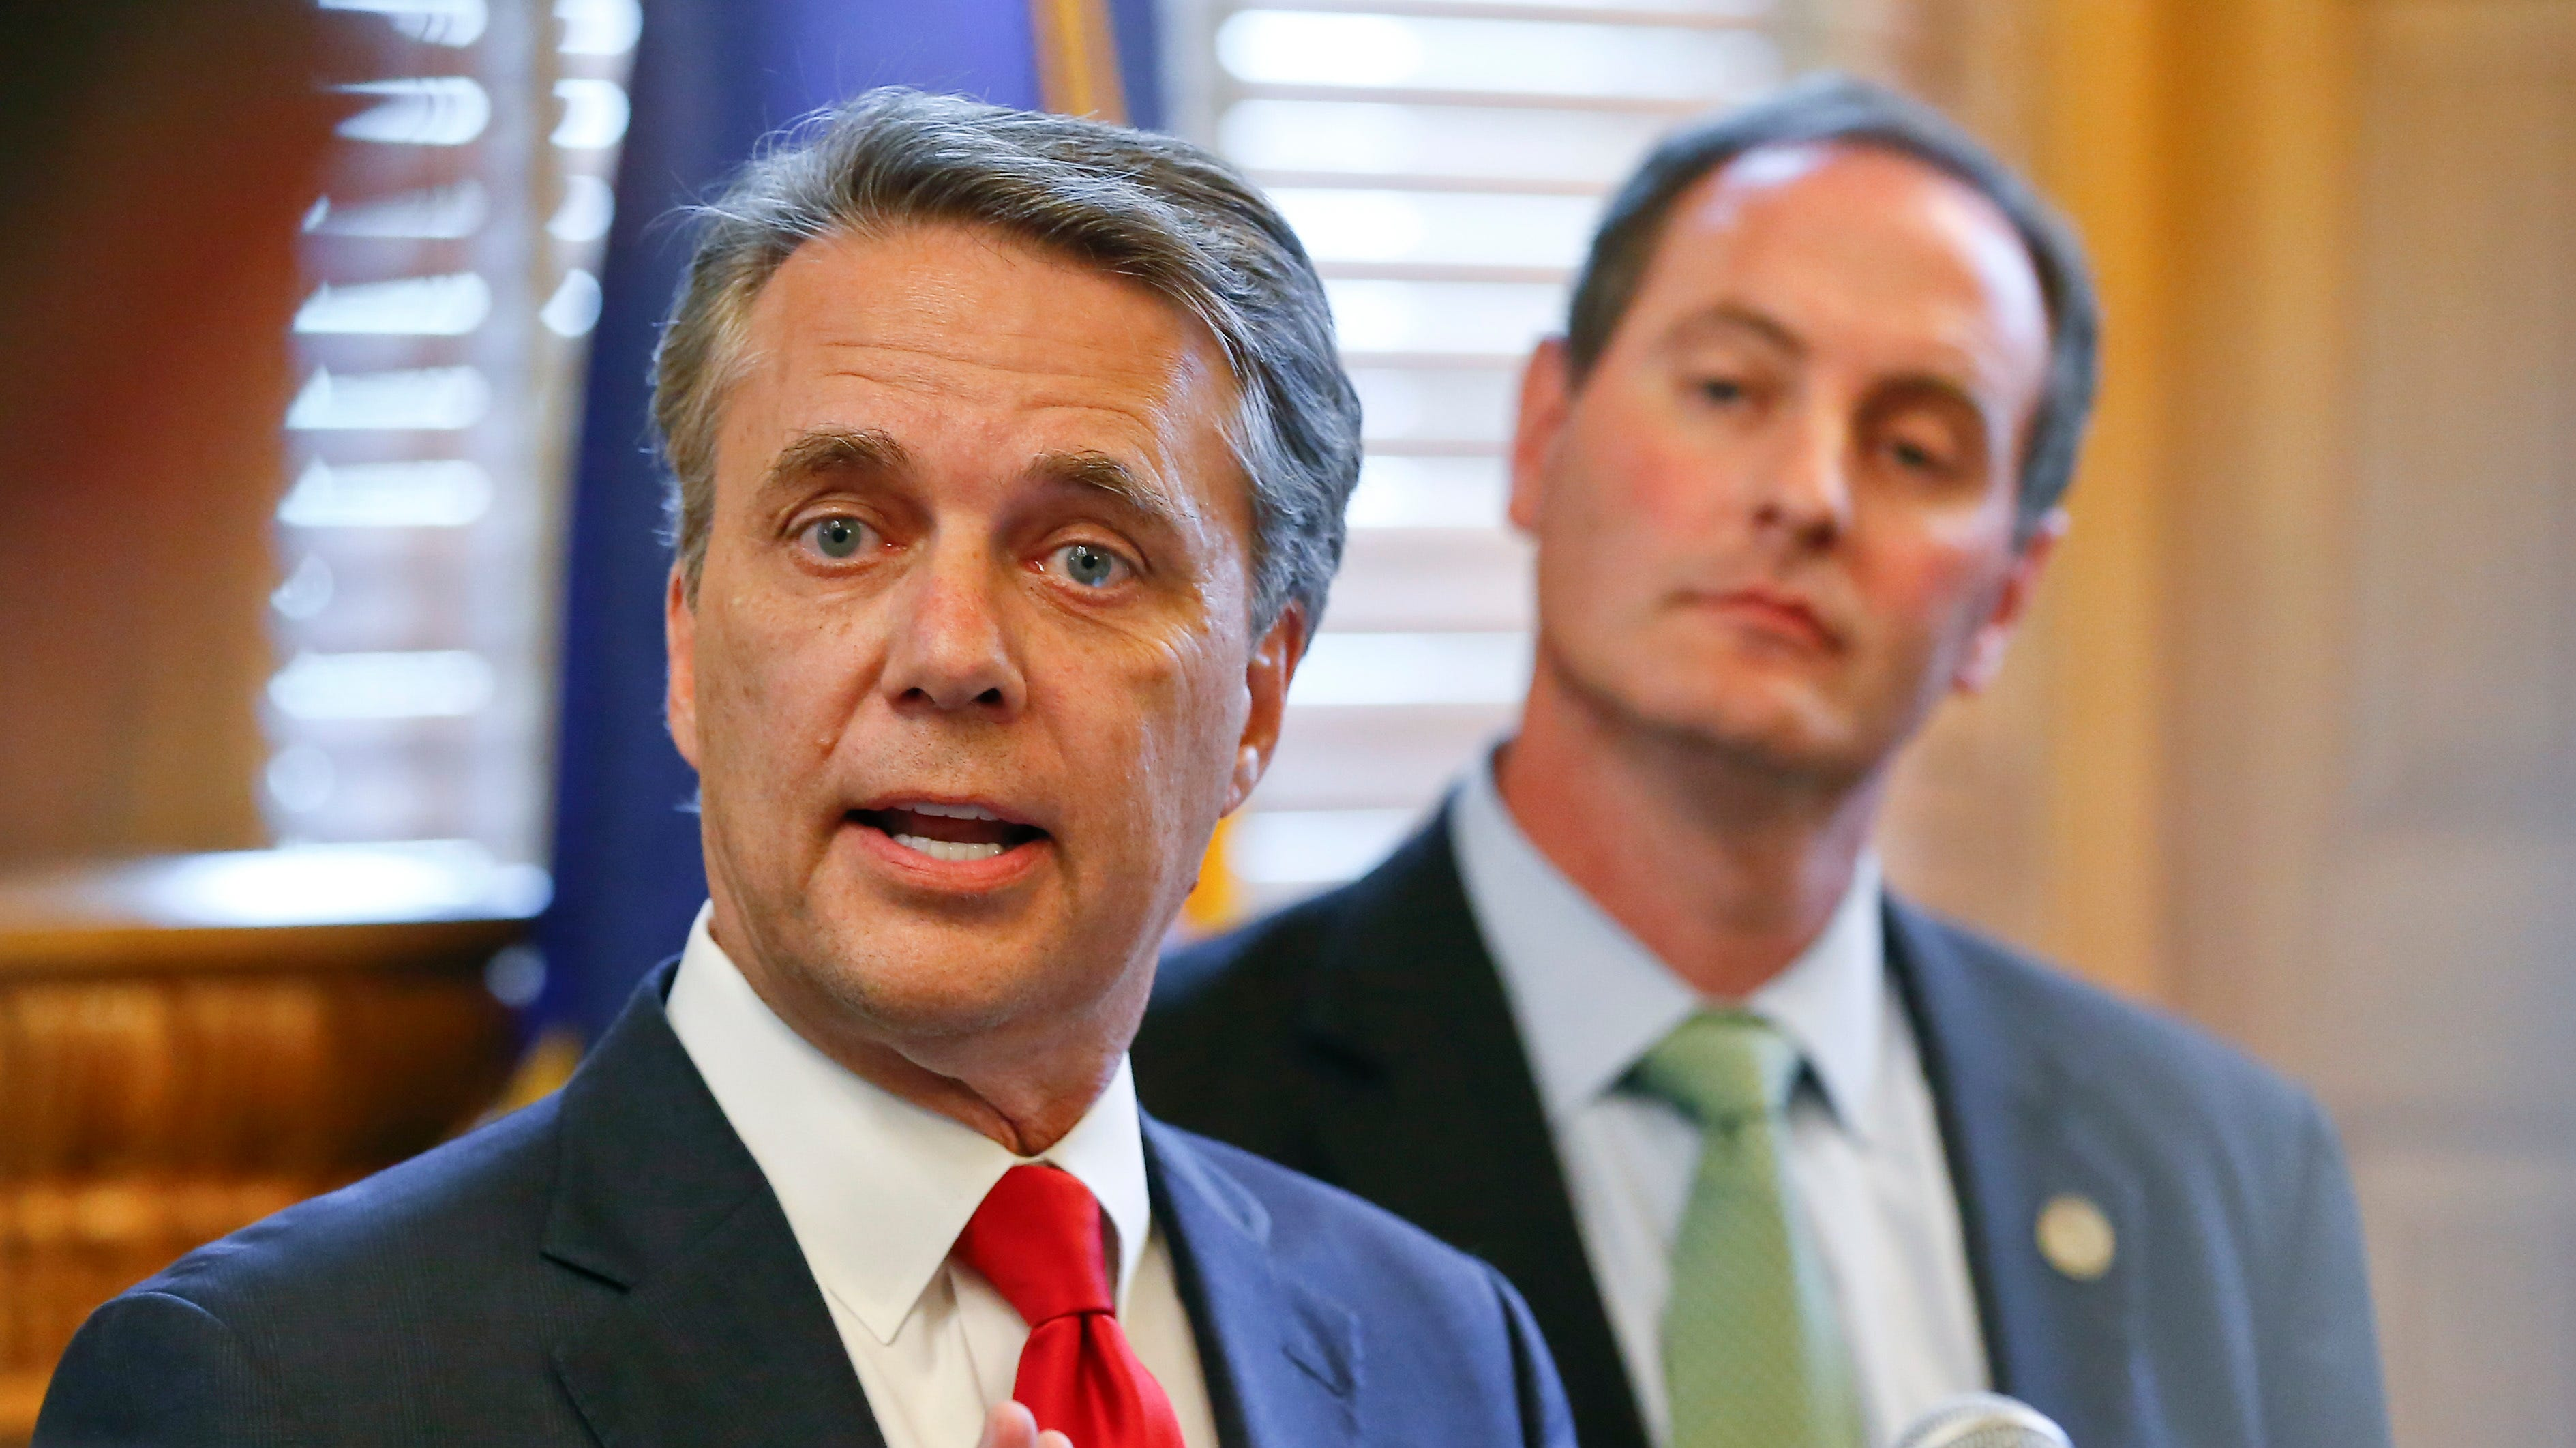 In this Aug. 8, 2018, file photo, Kansas Gov. Jeff Colyer, left, alongside Lt. Gov. Tracey Mann, addresses the media at the Kansas Statehouse in Topeka, Kan., a day after his primary race against Kansas Secretary of State Kris Kobach.